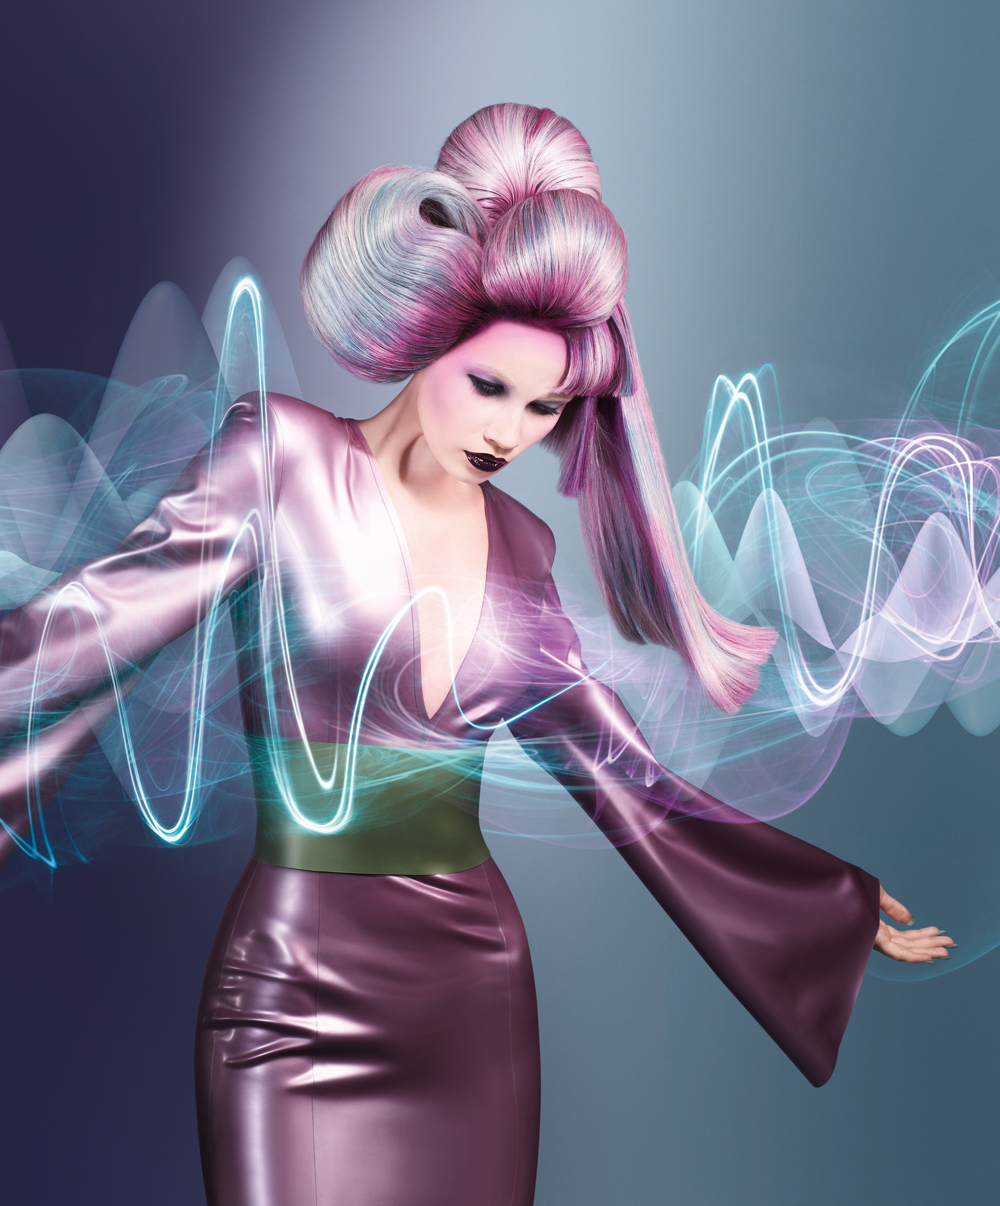 Wella Professional's Sound of Color Hair Trends for 2013